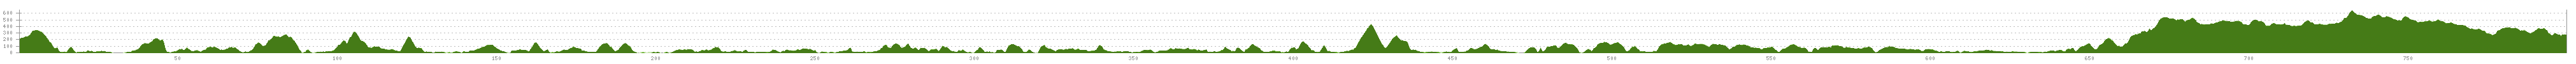 Elevation profile Cycle Tour Camino del Norte